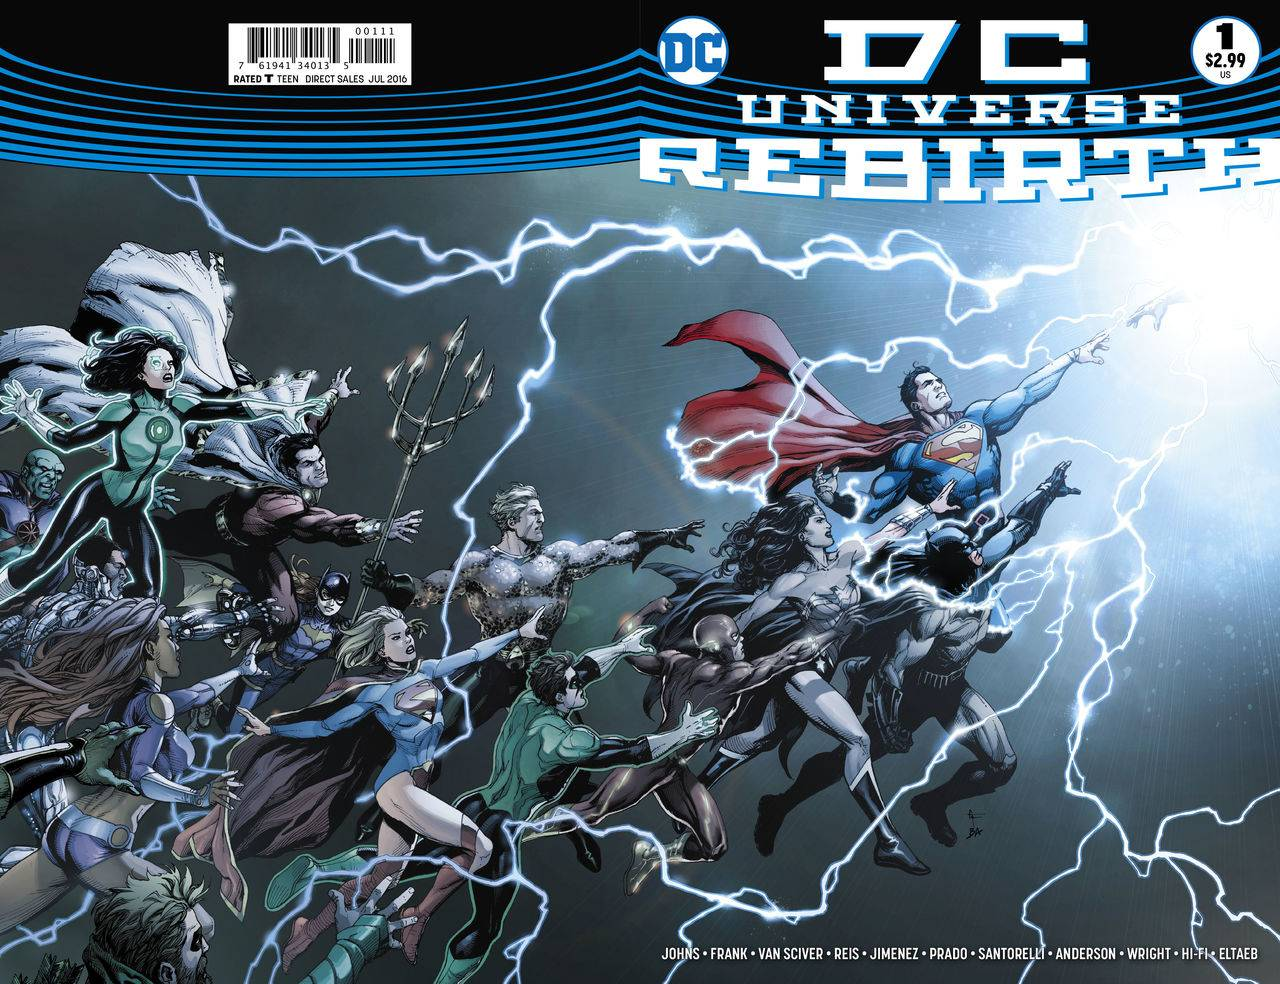 DC Universe Rebirth #1 includes art and a cover by Gary Frank